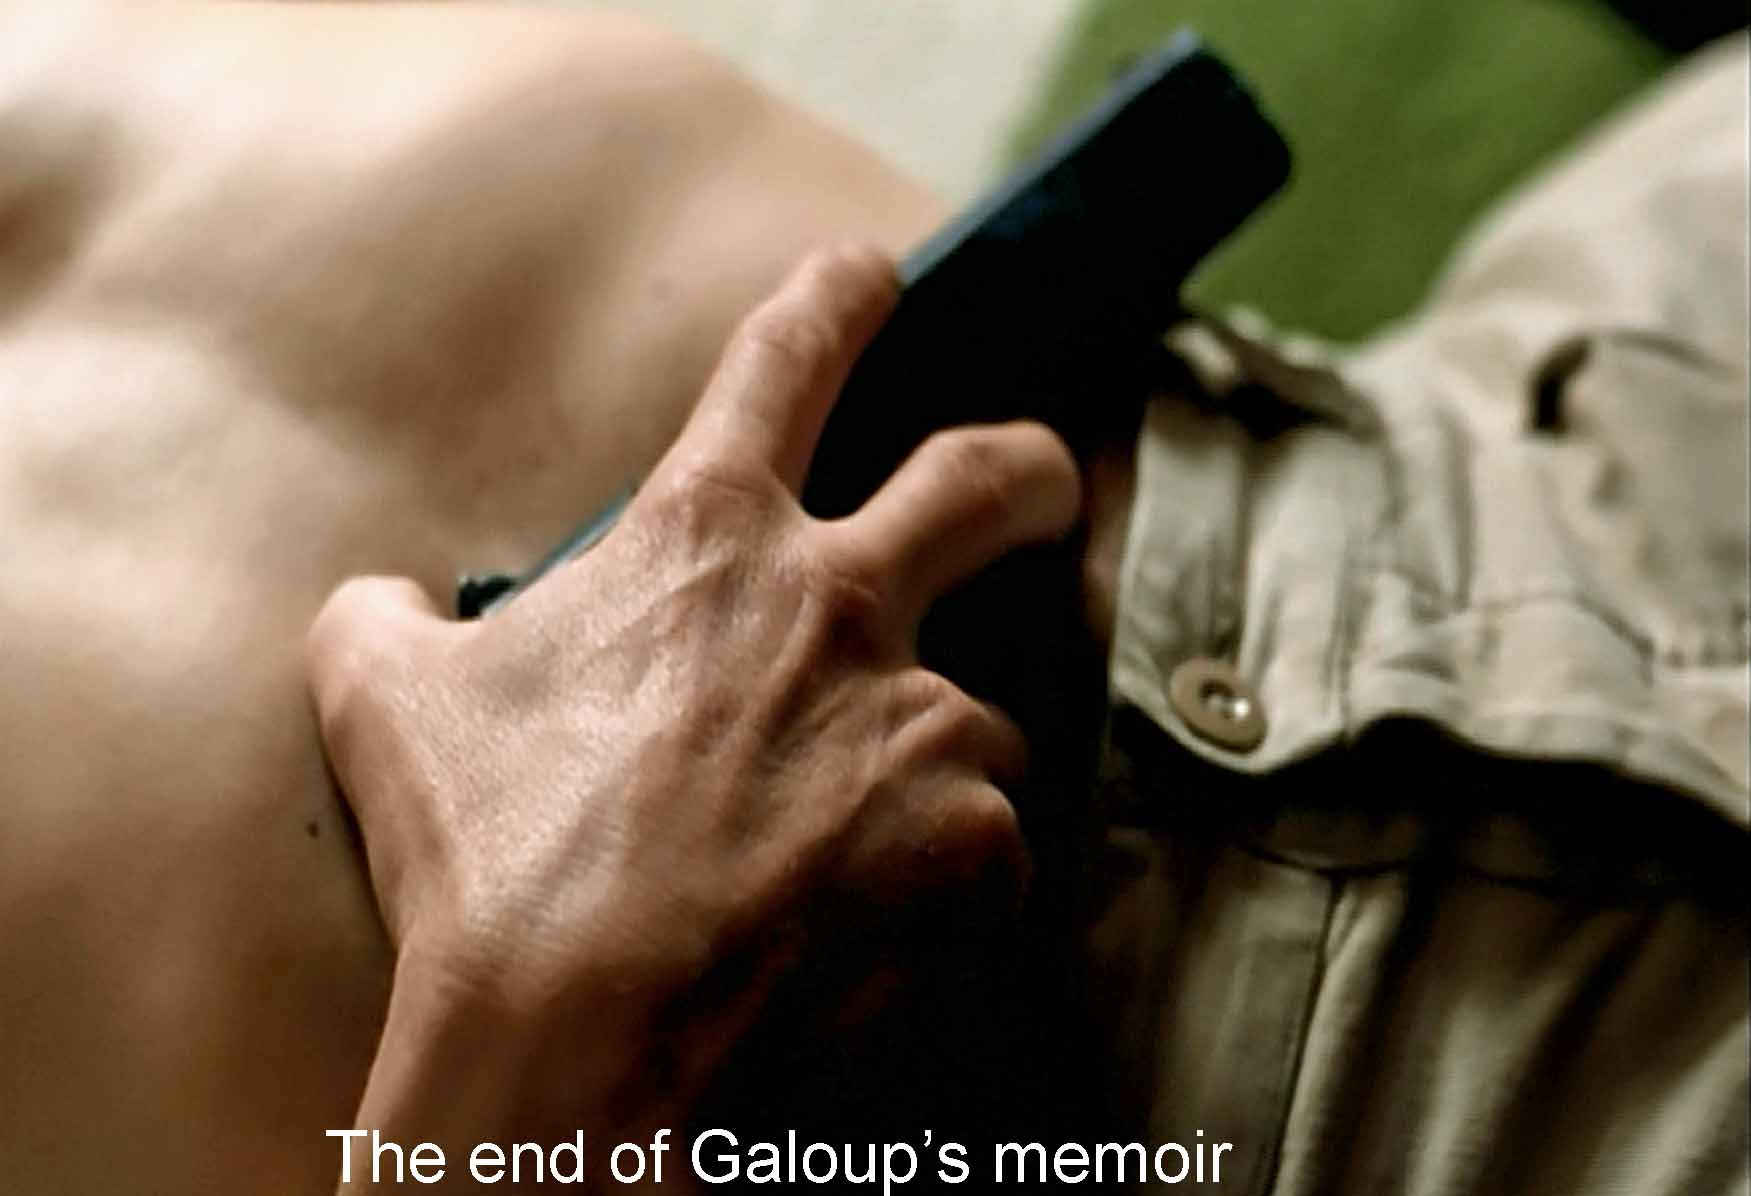 The end of Galoup's memoir